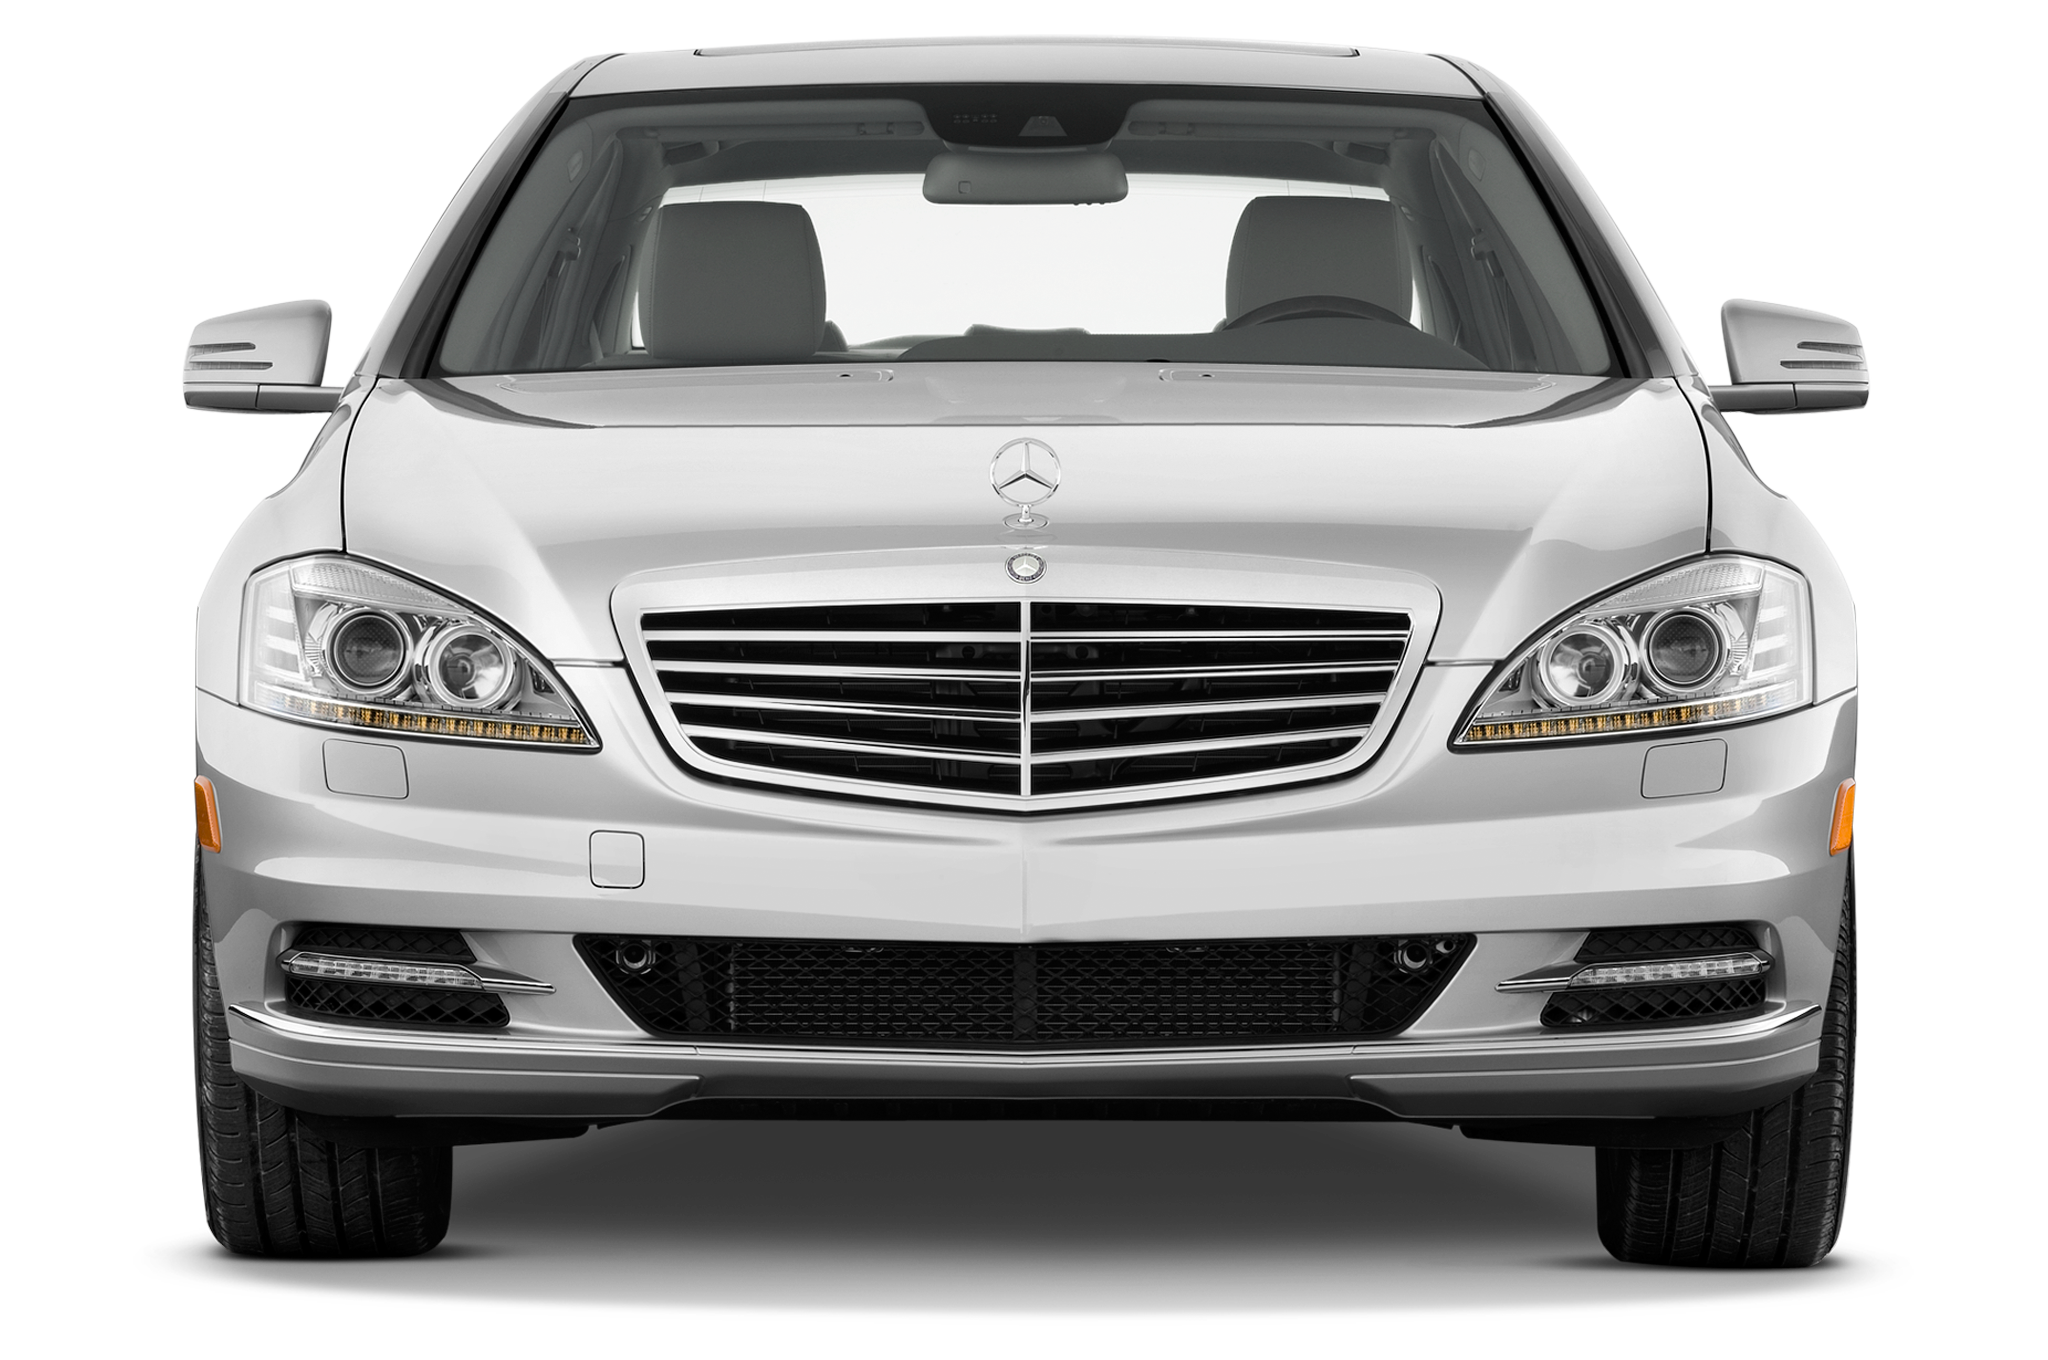 2010 mercedes benz s550 4matic mercedes benz luxury. Black Bedroom Furniture Sets. Home Design Ideas